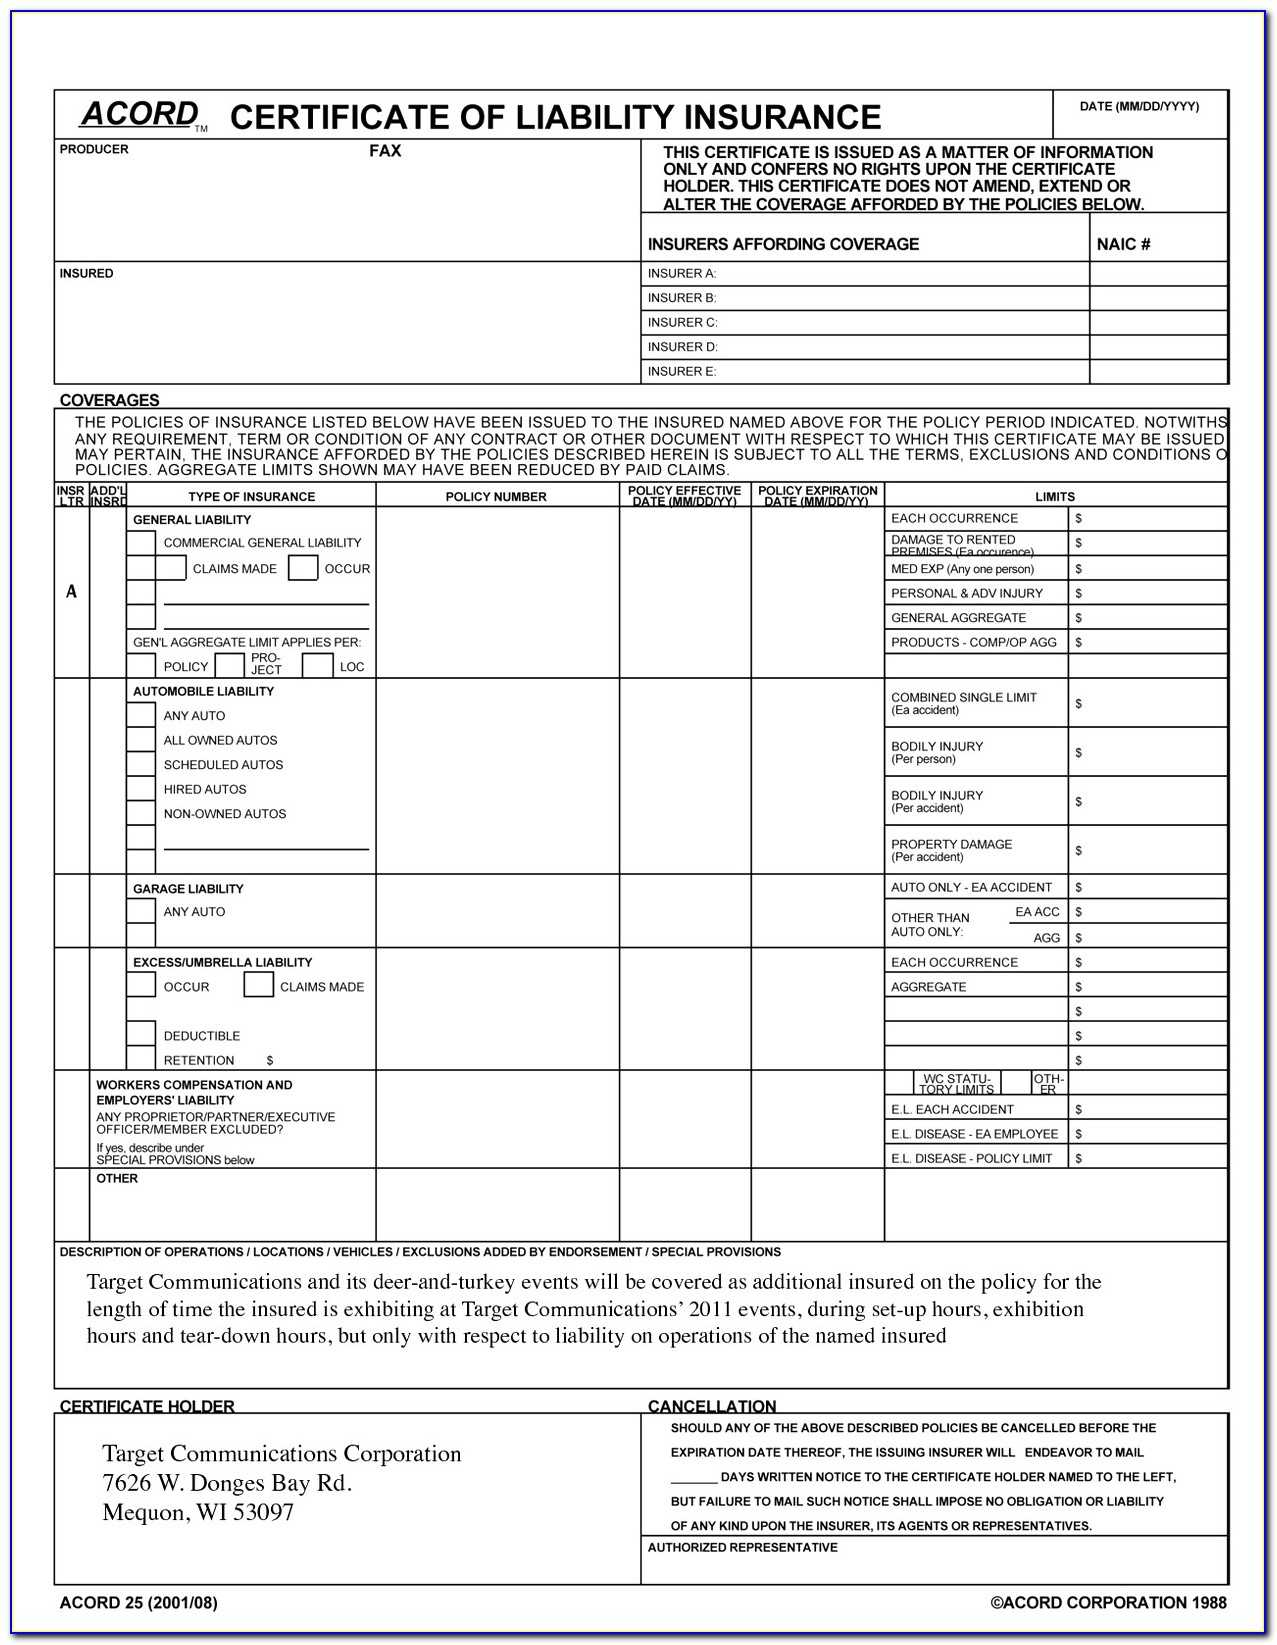 Acord Certificate Of Liability Insurance Template Top Pertaining To Certificate Of Liability Insurance Template